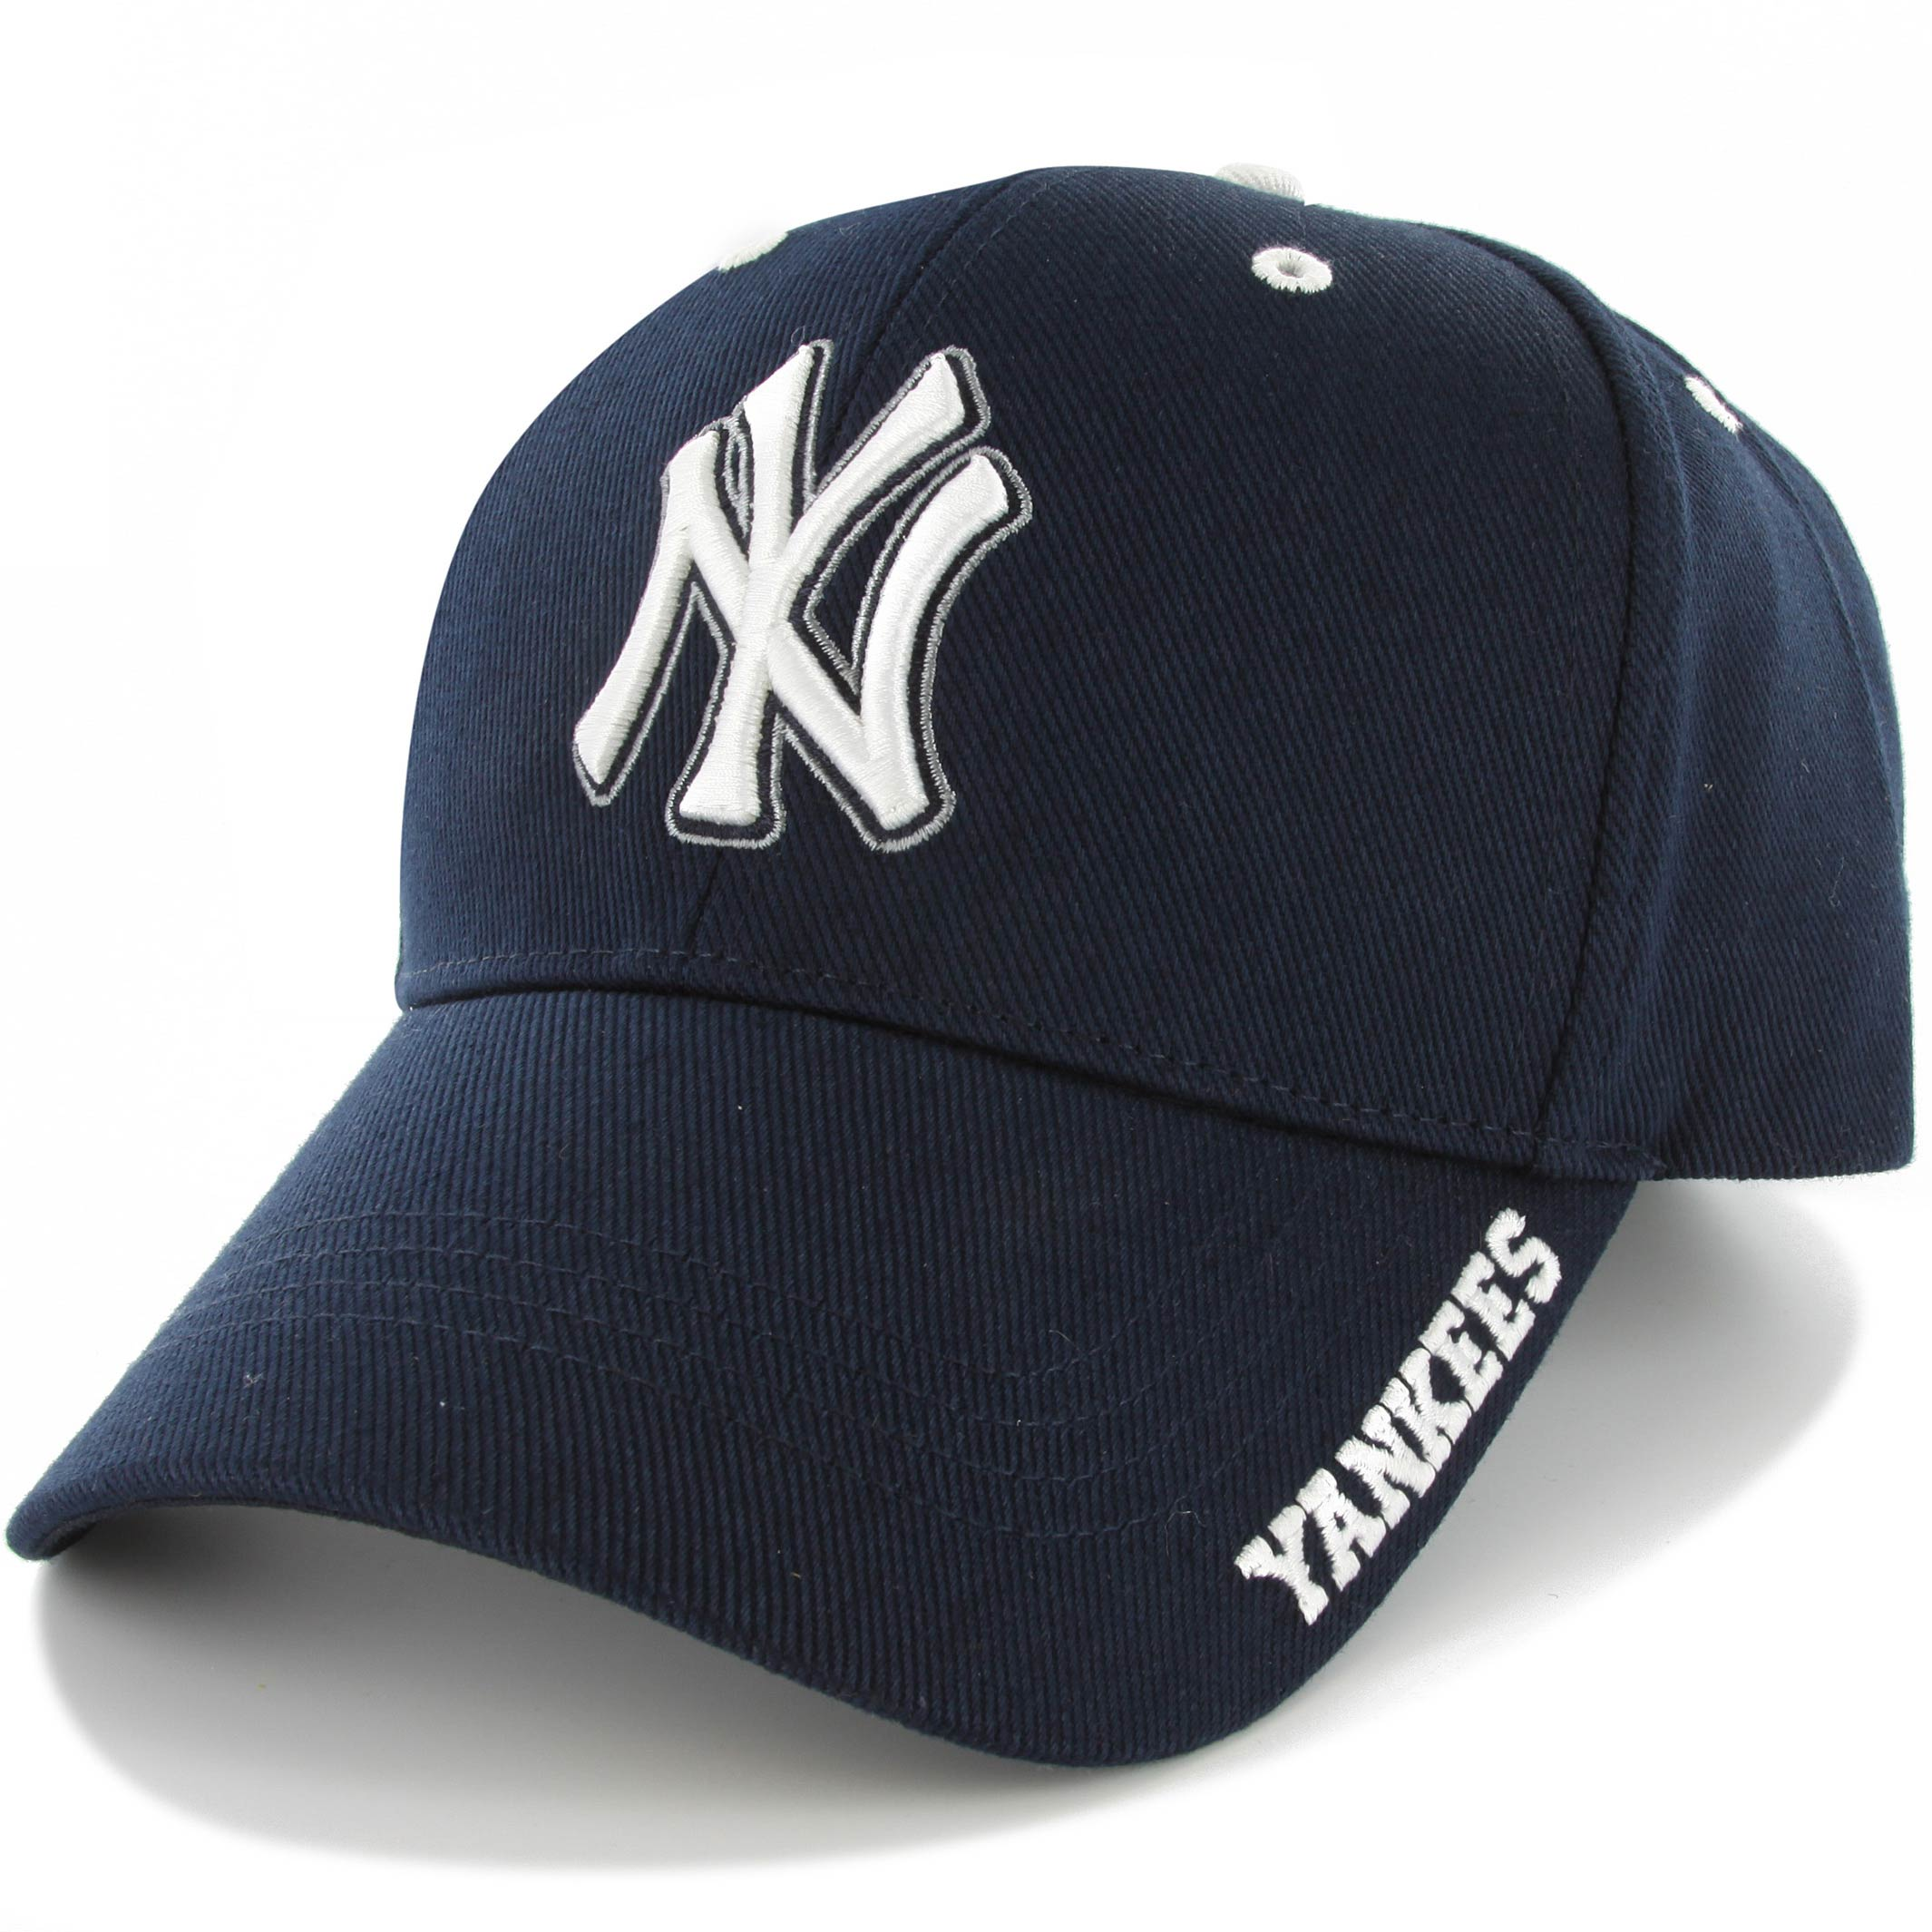 New York Yankees '47 Frost MVP Adjustable Hat - Navy